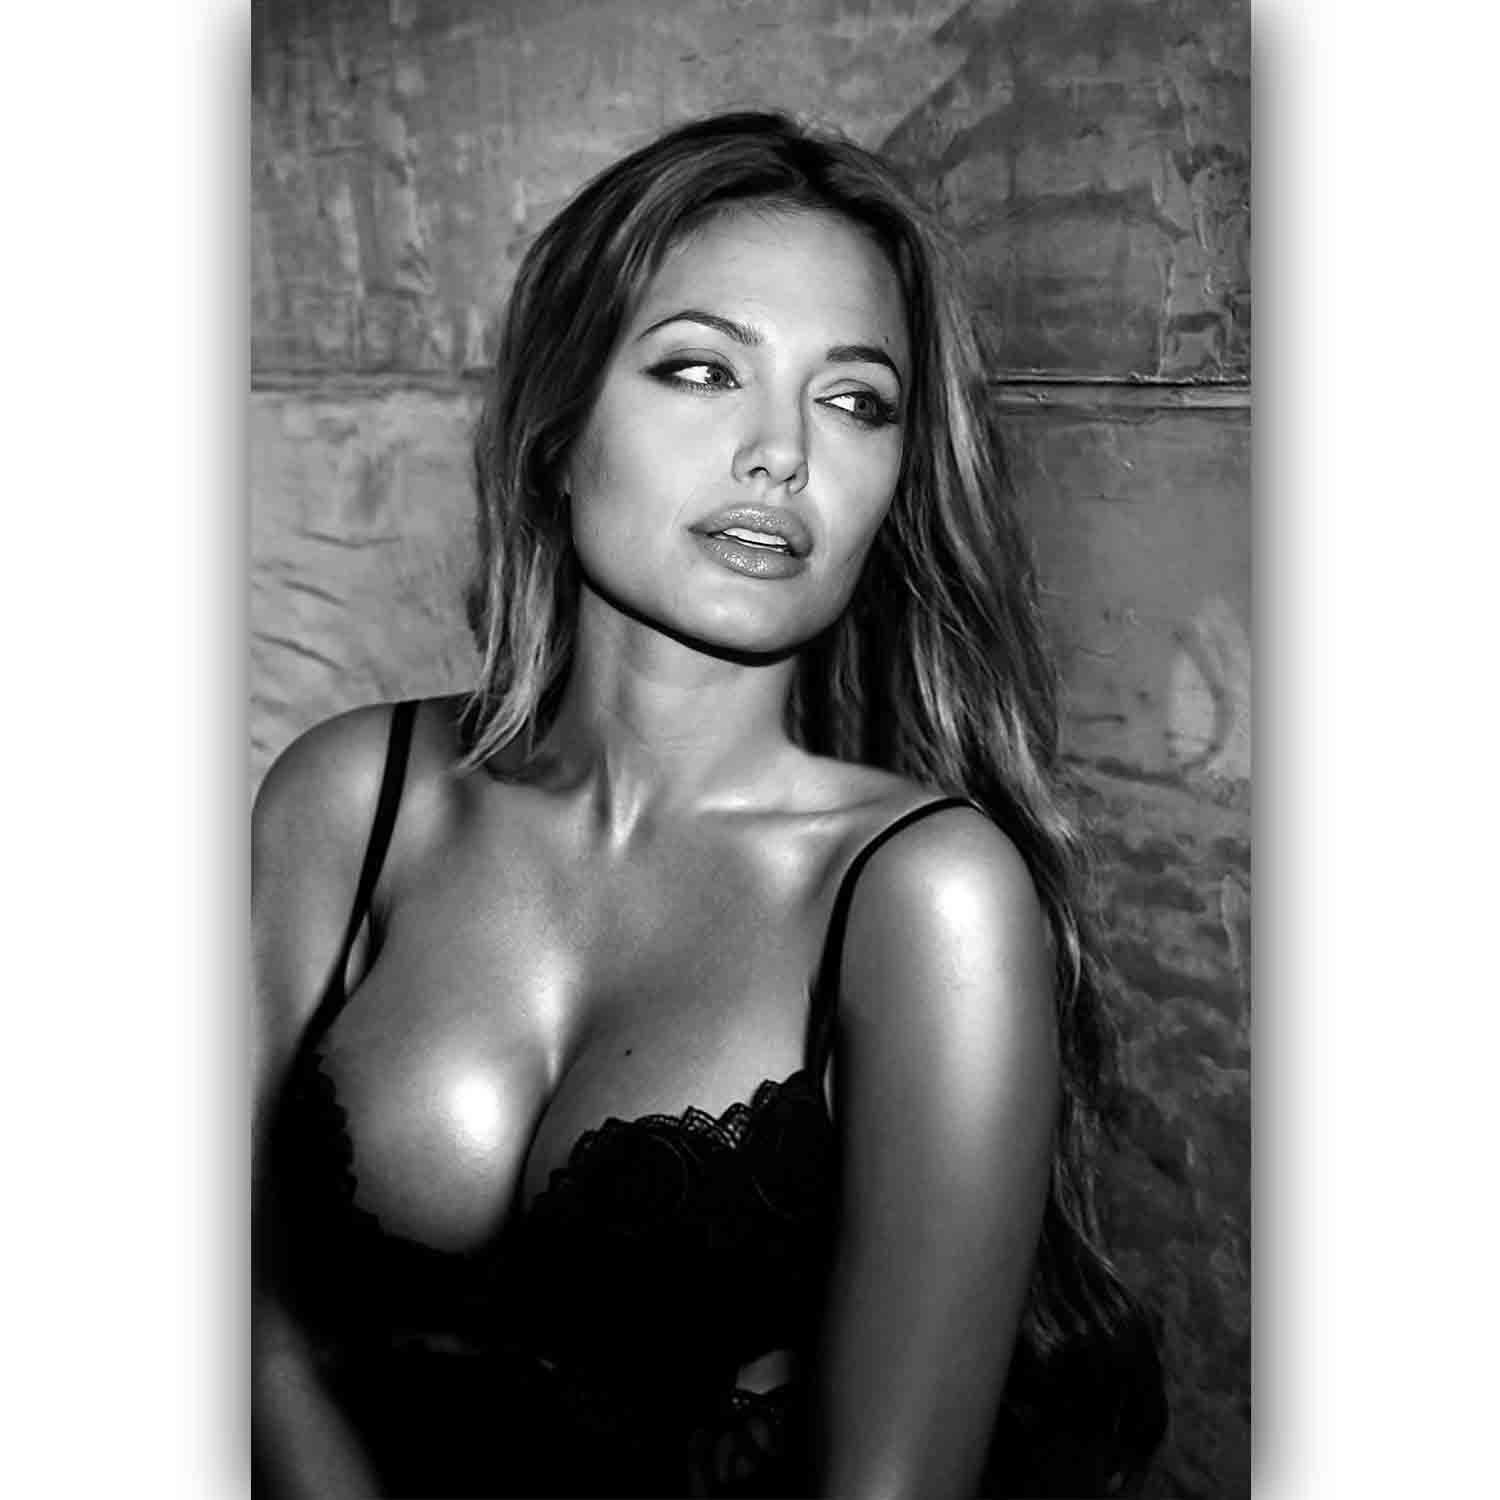 Angelina Jolie Sexy Pics 49 hottest angelina jolie bikini pictures are just too hot